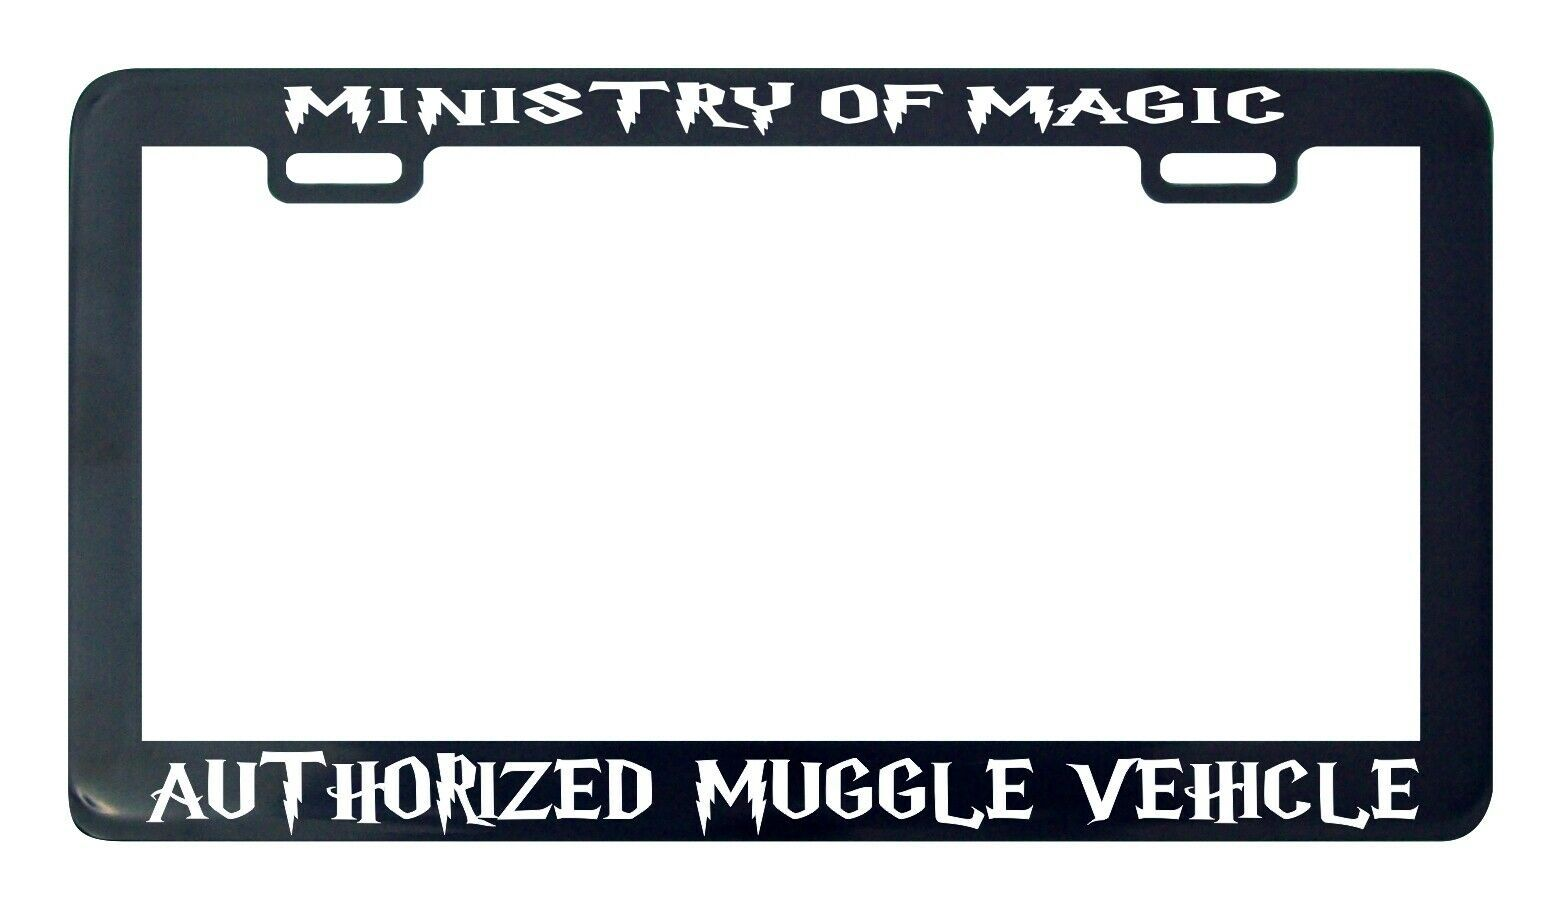 Primary image for Ministry of magic authorized muggle vehicle license plate frame holder